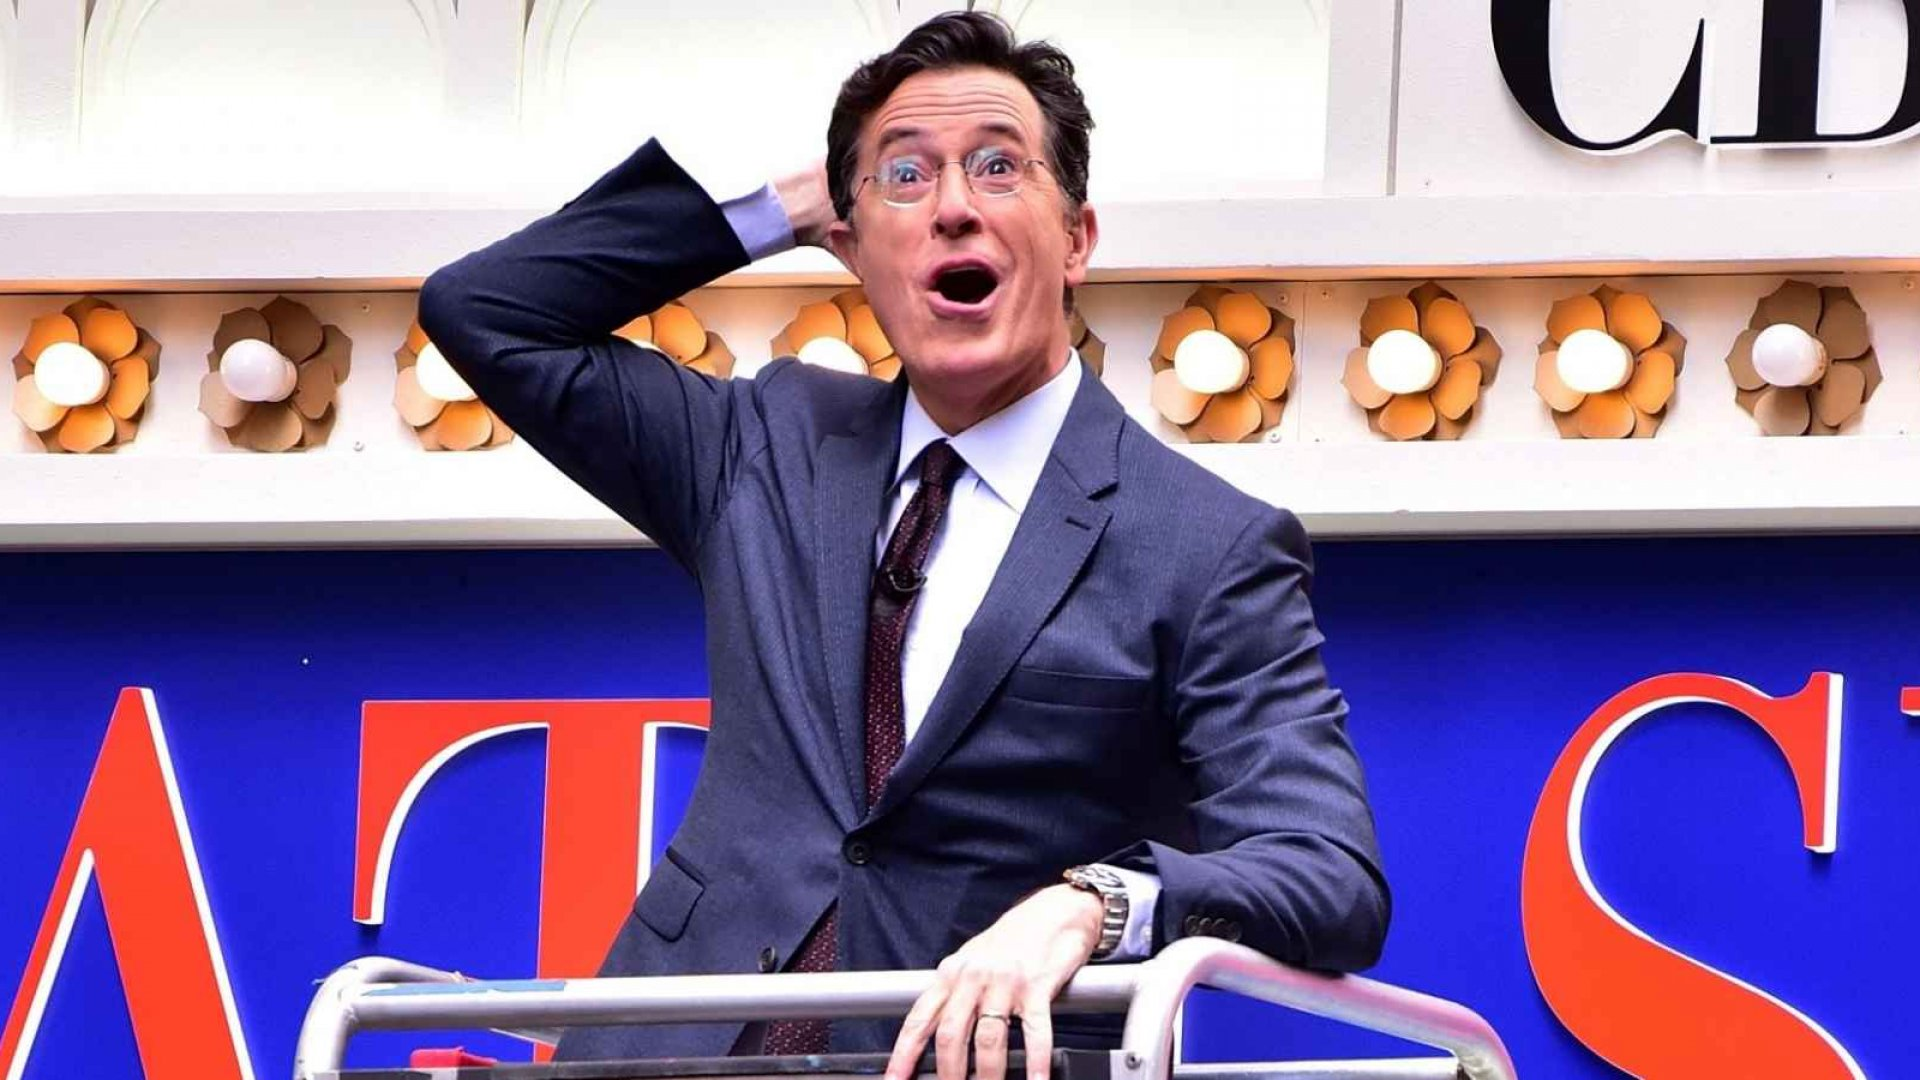 Thanks to crowdsourcing, there's a treadmill on the International Space Station named after Late Show host Stephen Colbert.